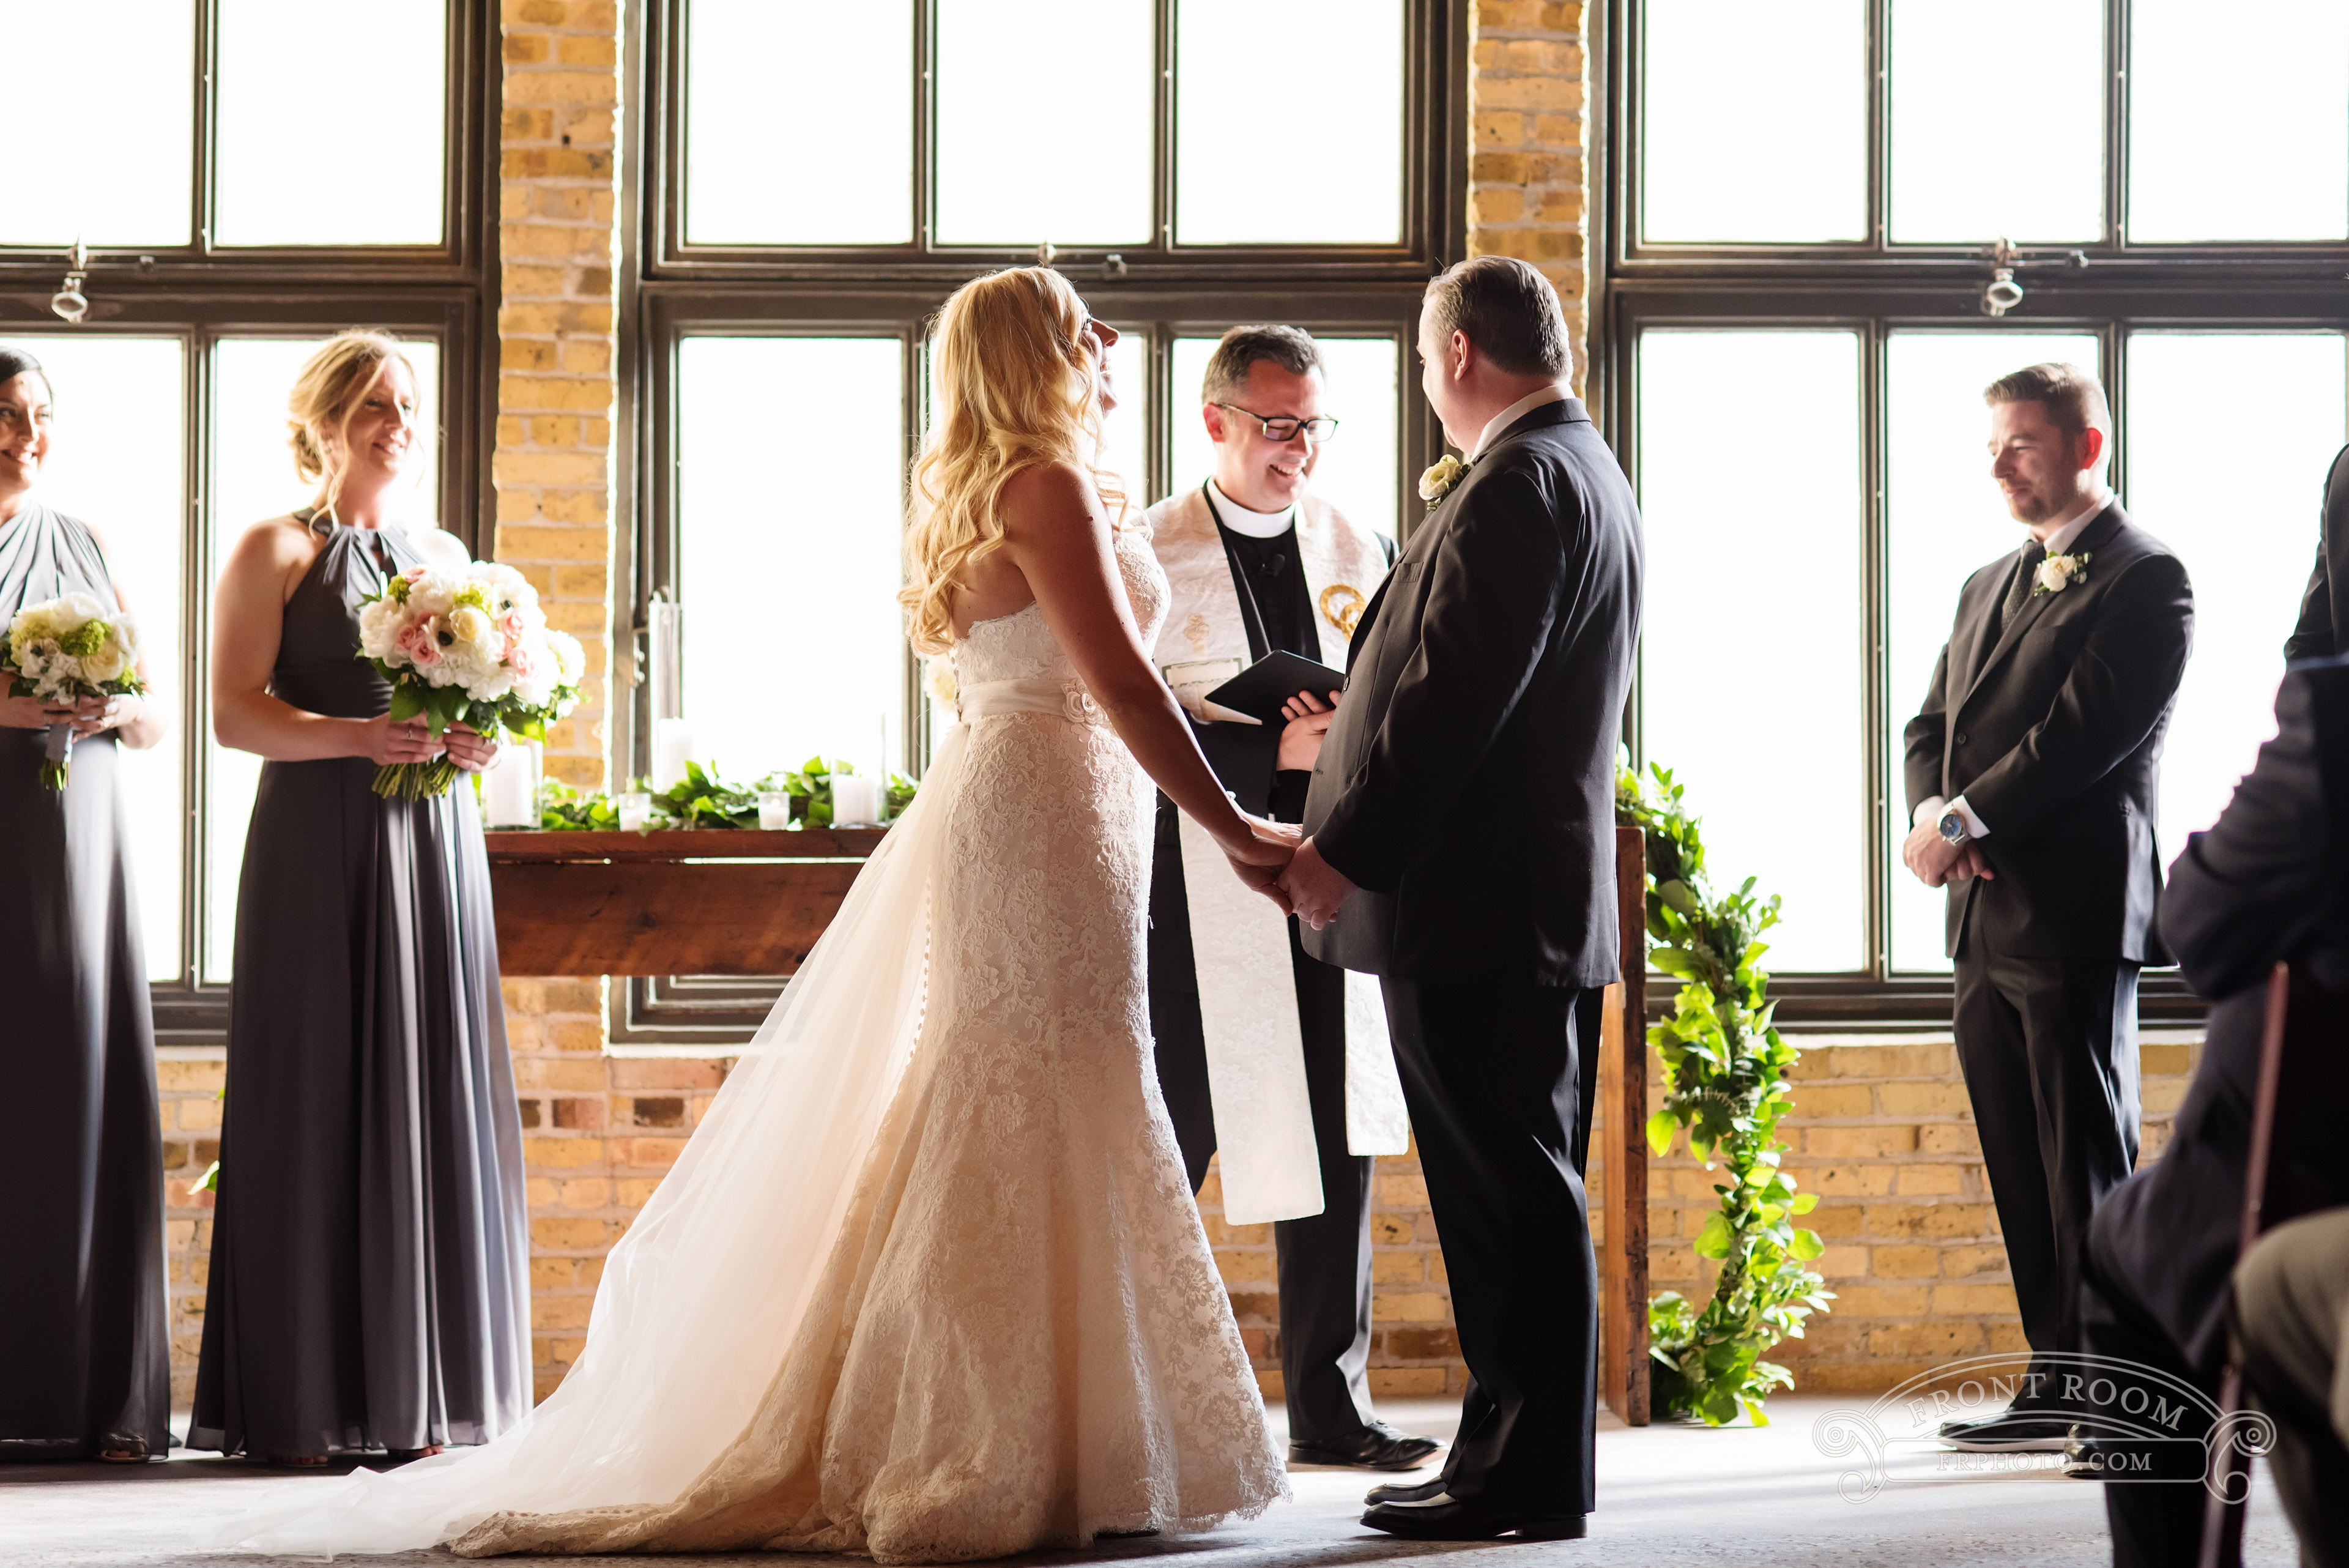 Pritzlaff_Wedding_FRPhoto_160521A_W_513_blog